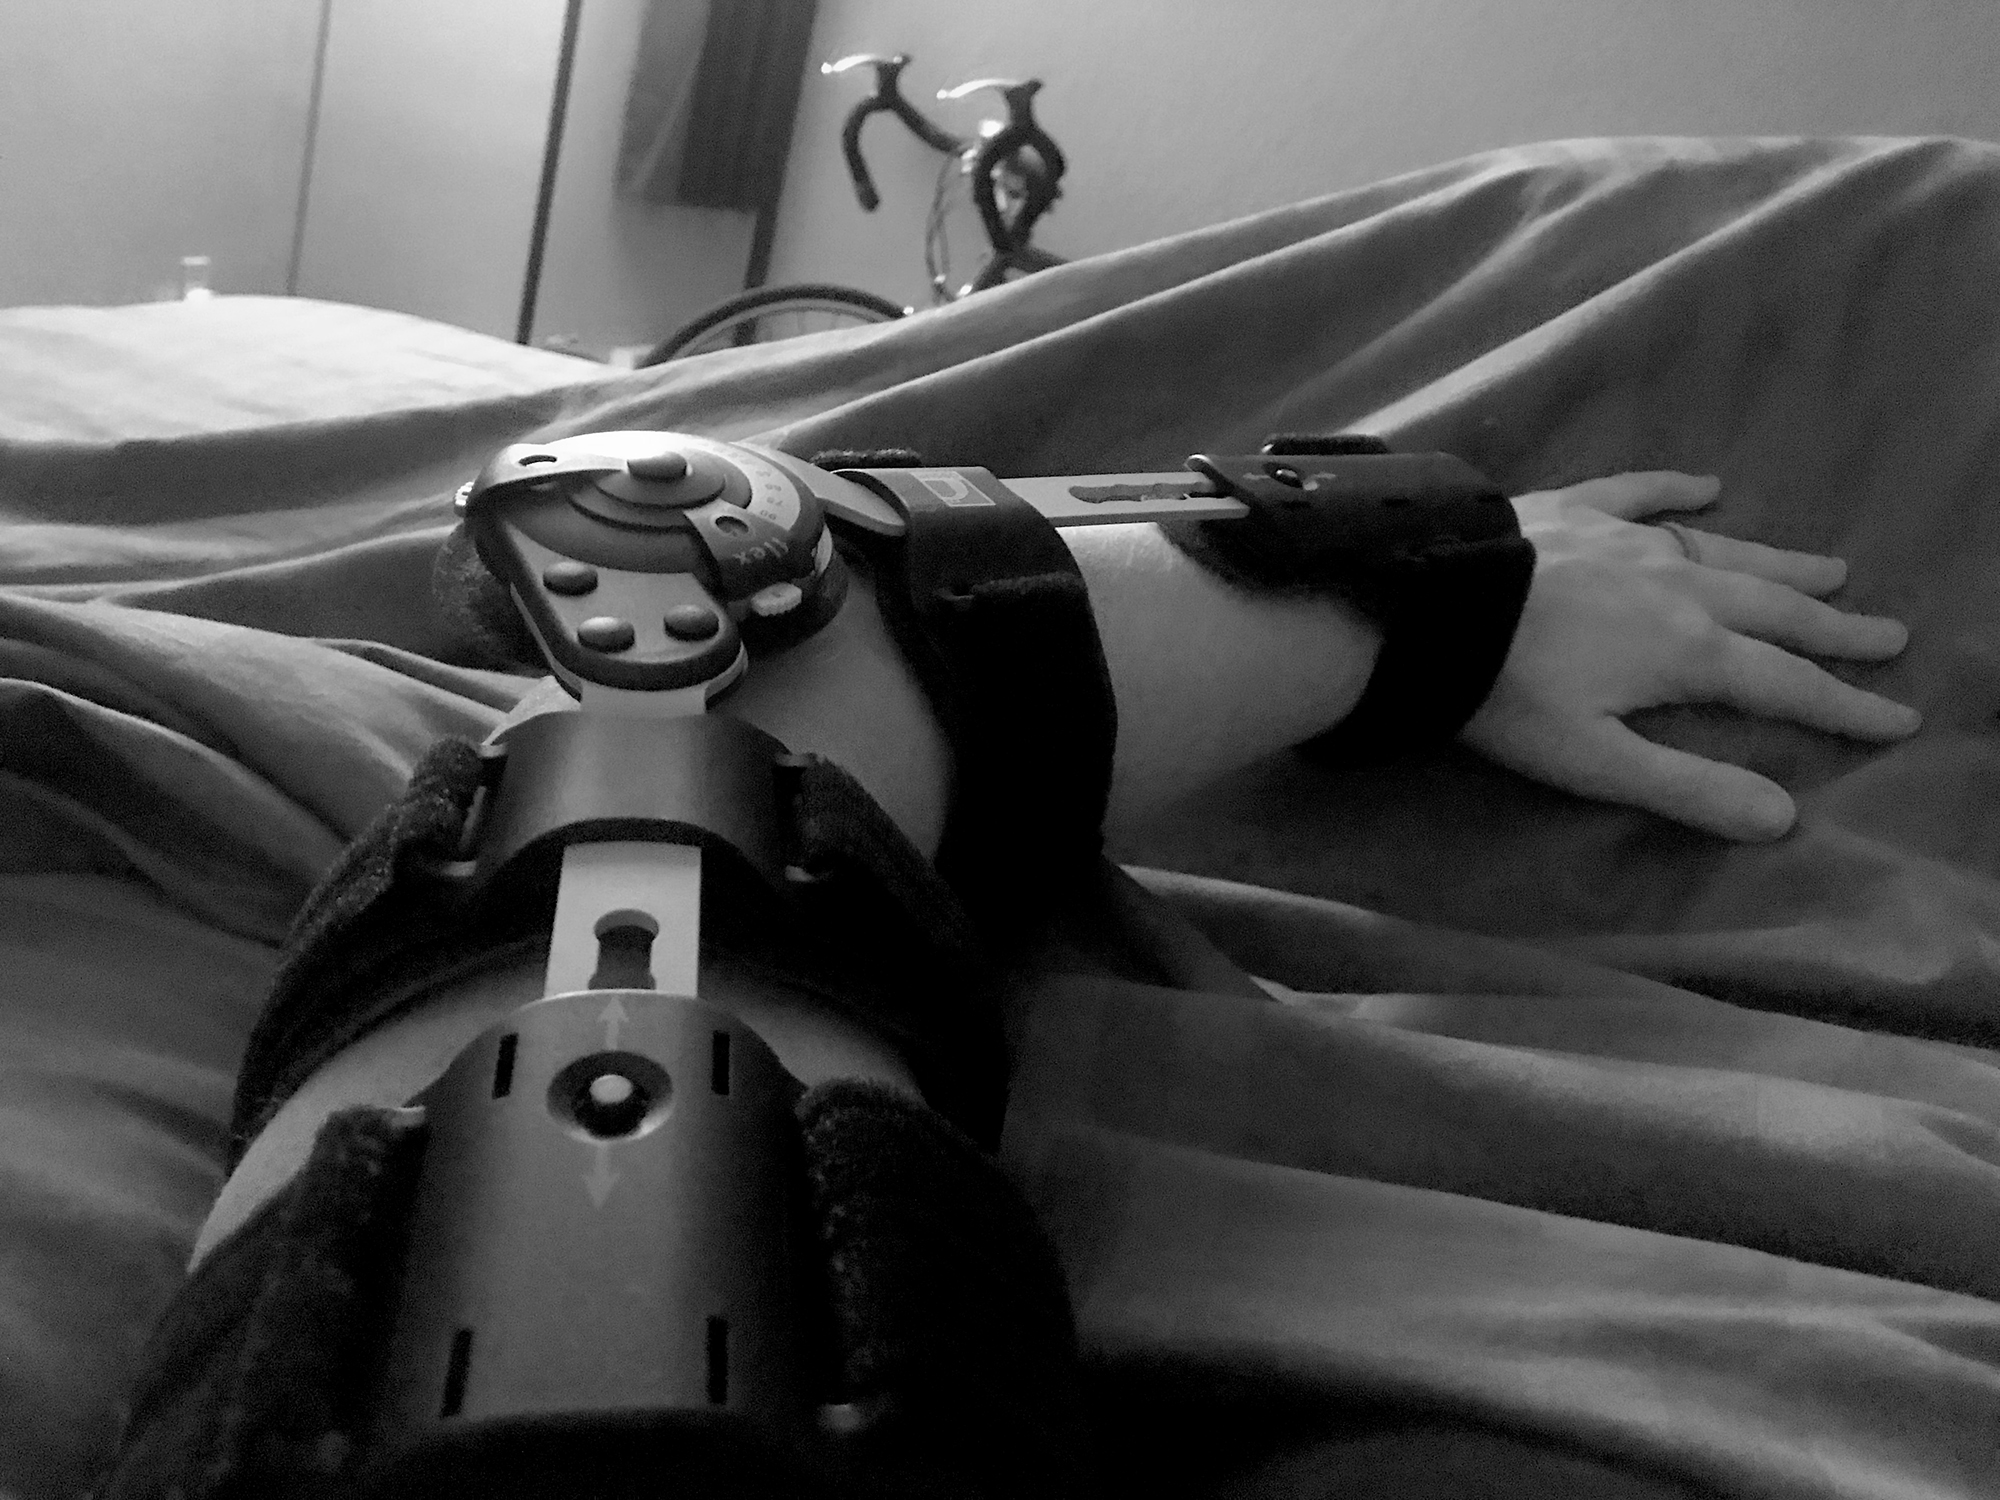 The night I got my brace I was still woozily exhausted from painkillers and incredibly bruised. While I'm in a much better place now, it's going to be a while before I can ride the bike in the background here.